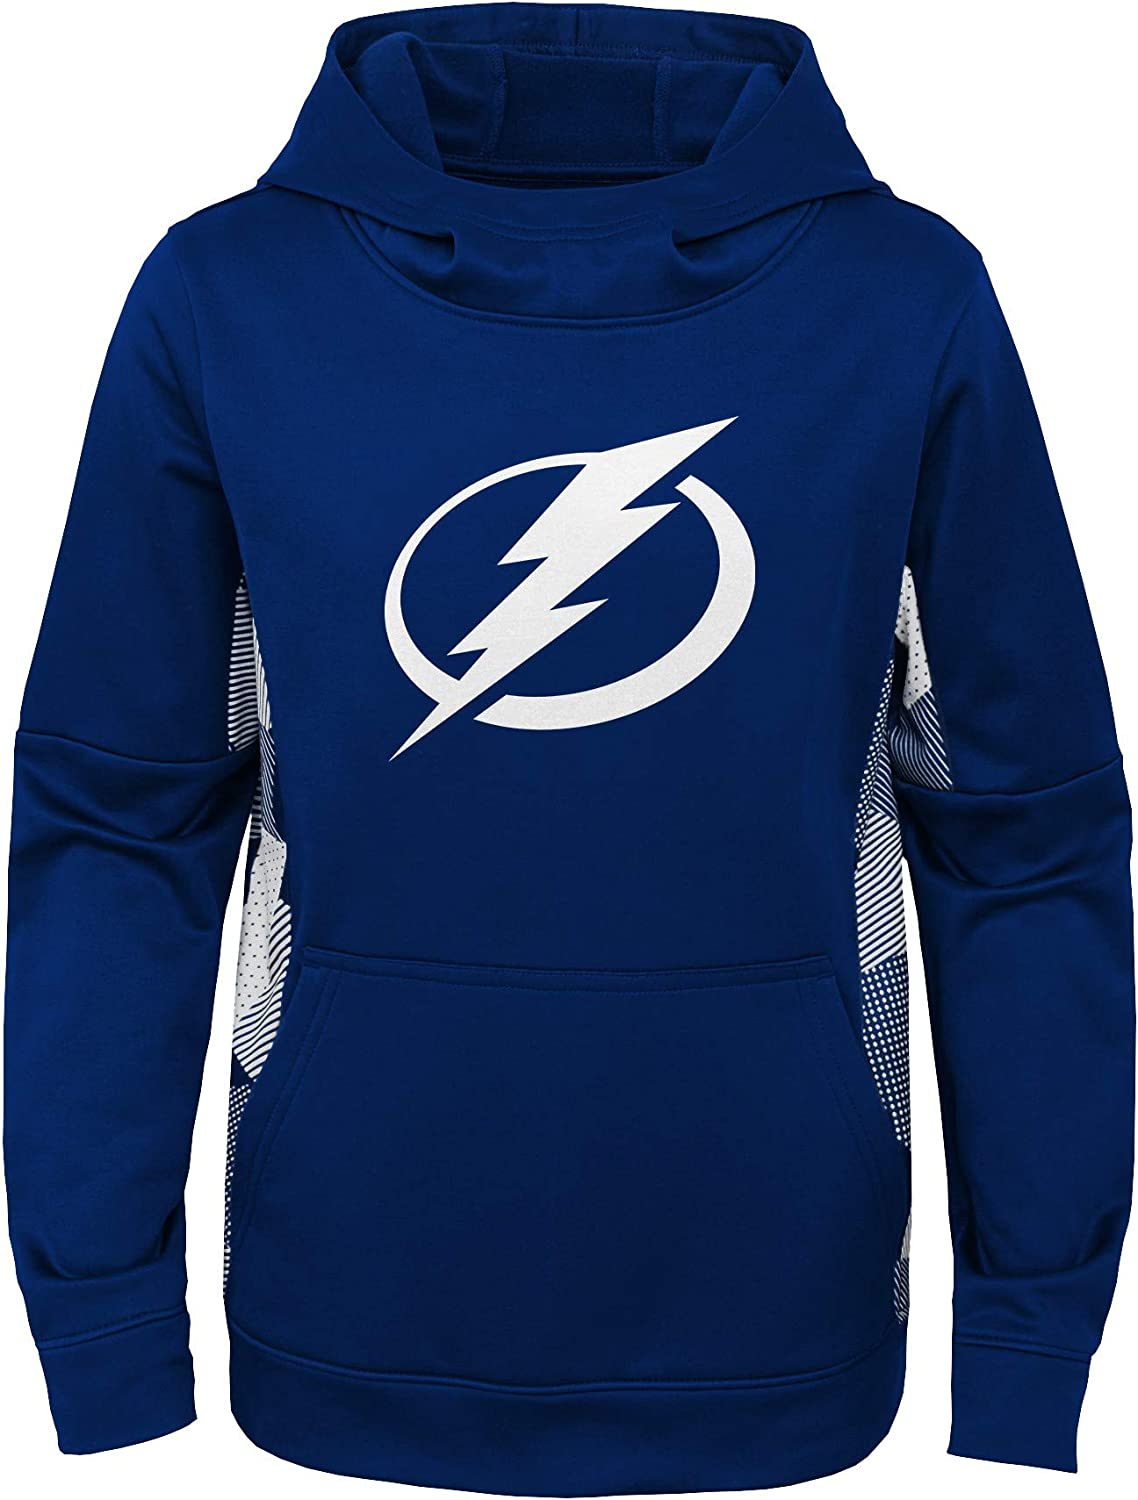 Youth NHL Tampa Bay Lightning Performance Hoodie Youth Sizing